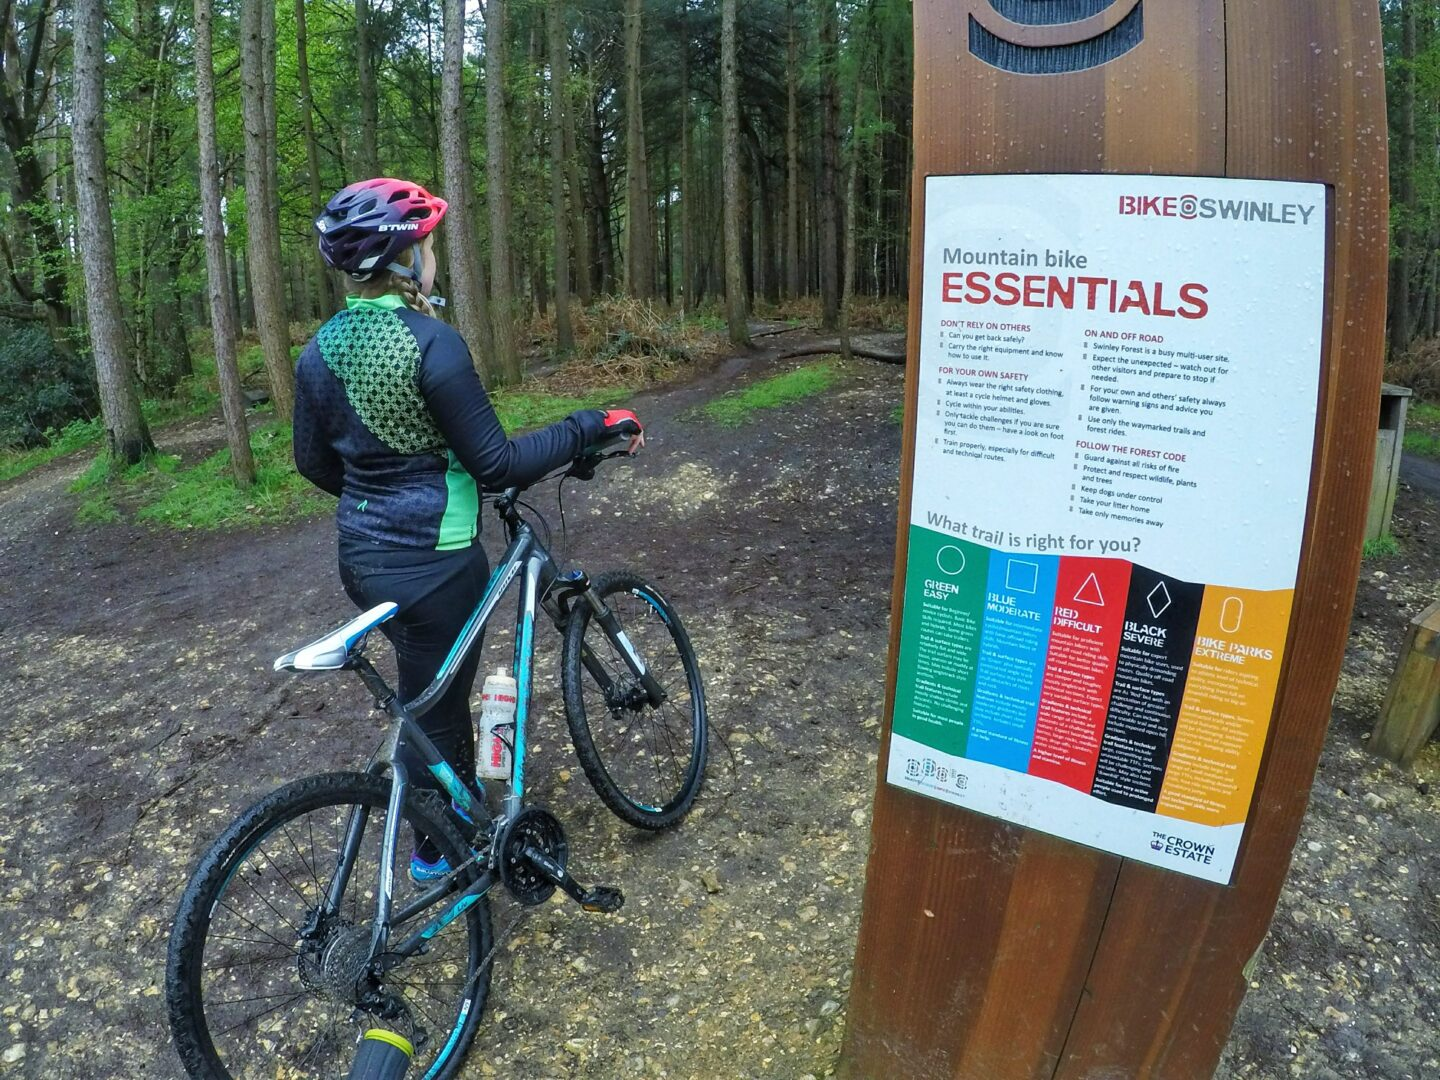 Mountain biking at Swinley Forest